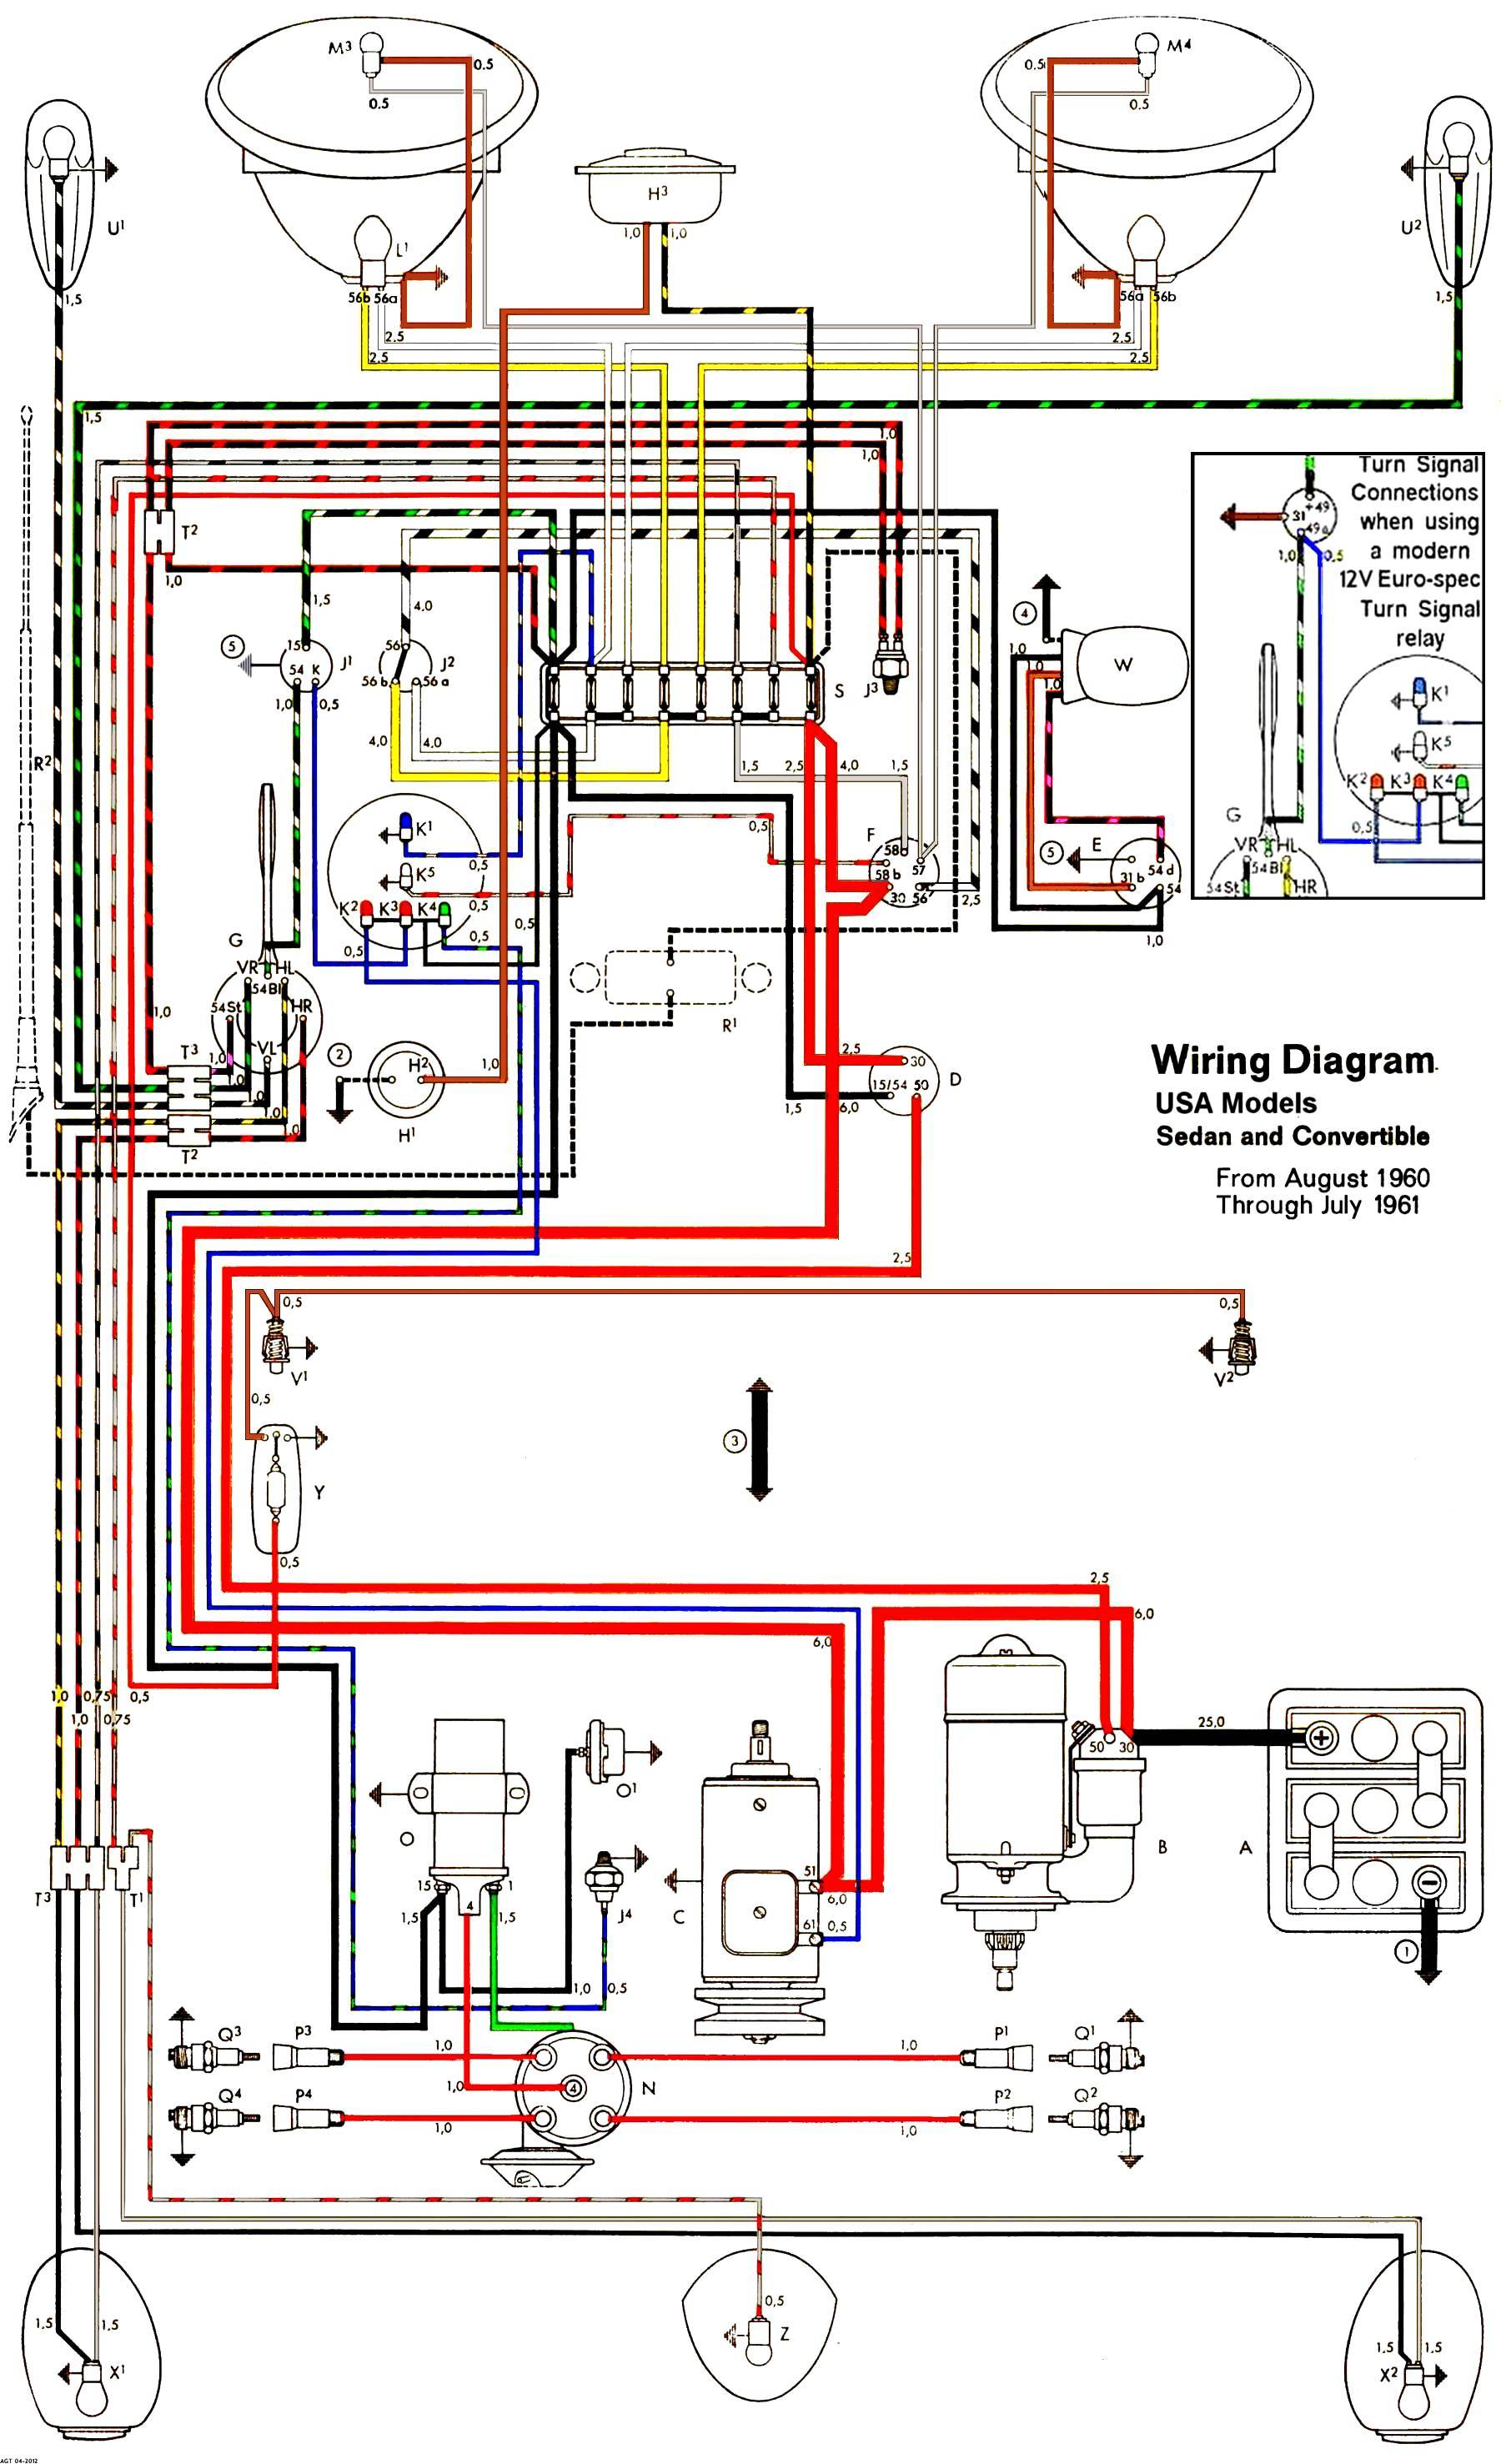 Type 1 Wiring Diagrams Quick Links To All The